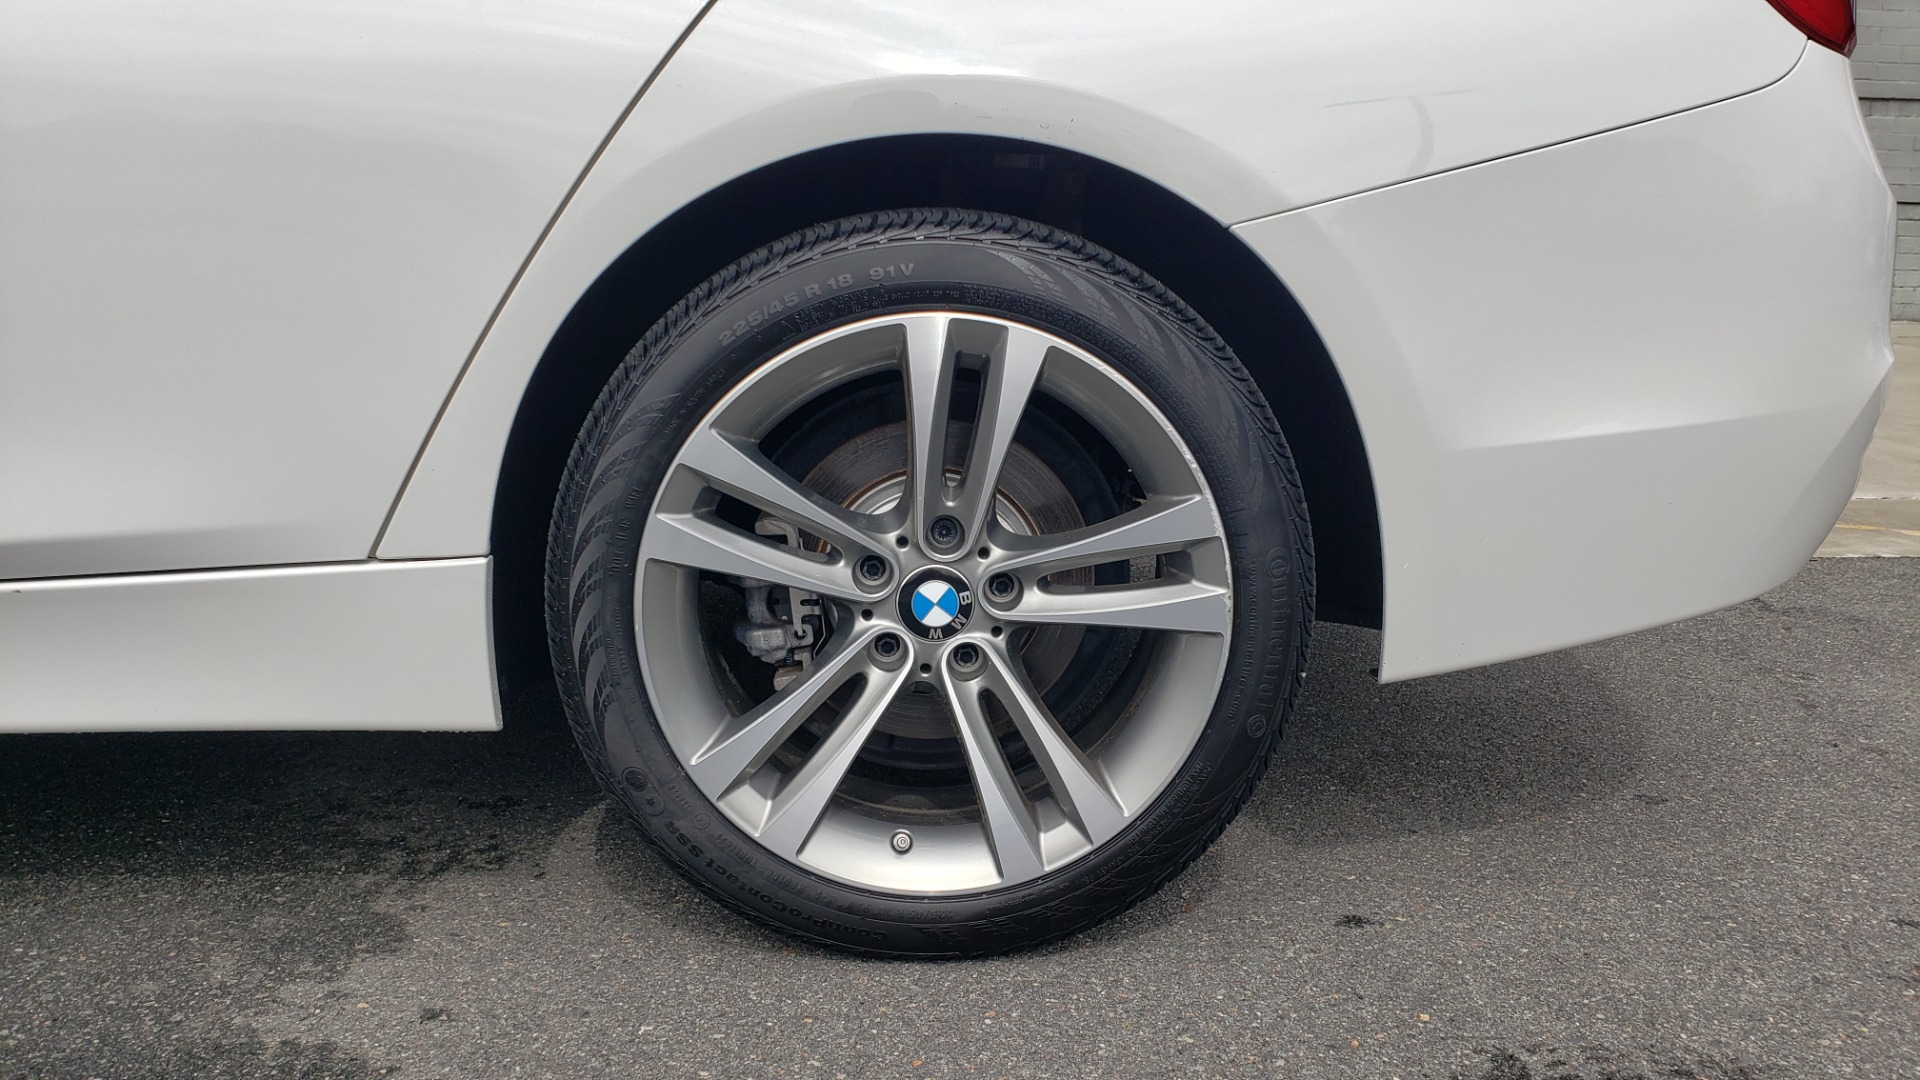 Used 2018 BMW 3 SERIES 330I XDRIVE / CONV PKG / SUNROOF / HTD STS / REARVIEW for sale $24,795 at Formula Imports in Charlotte NC 28227 81